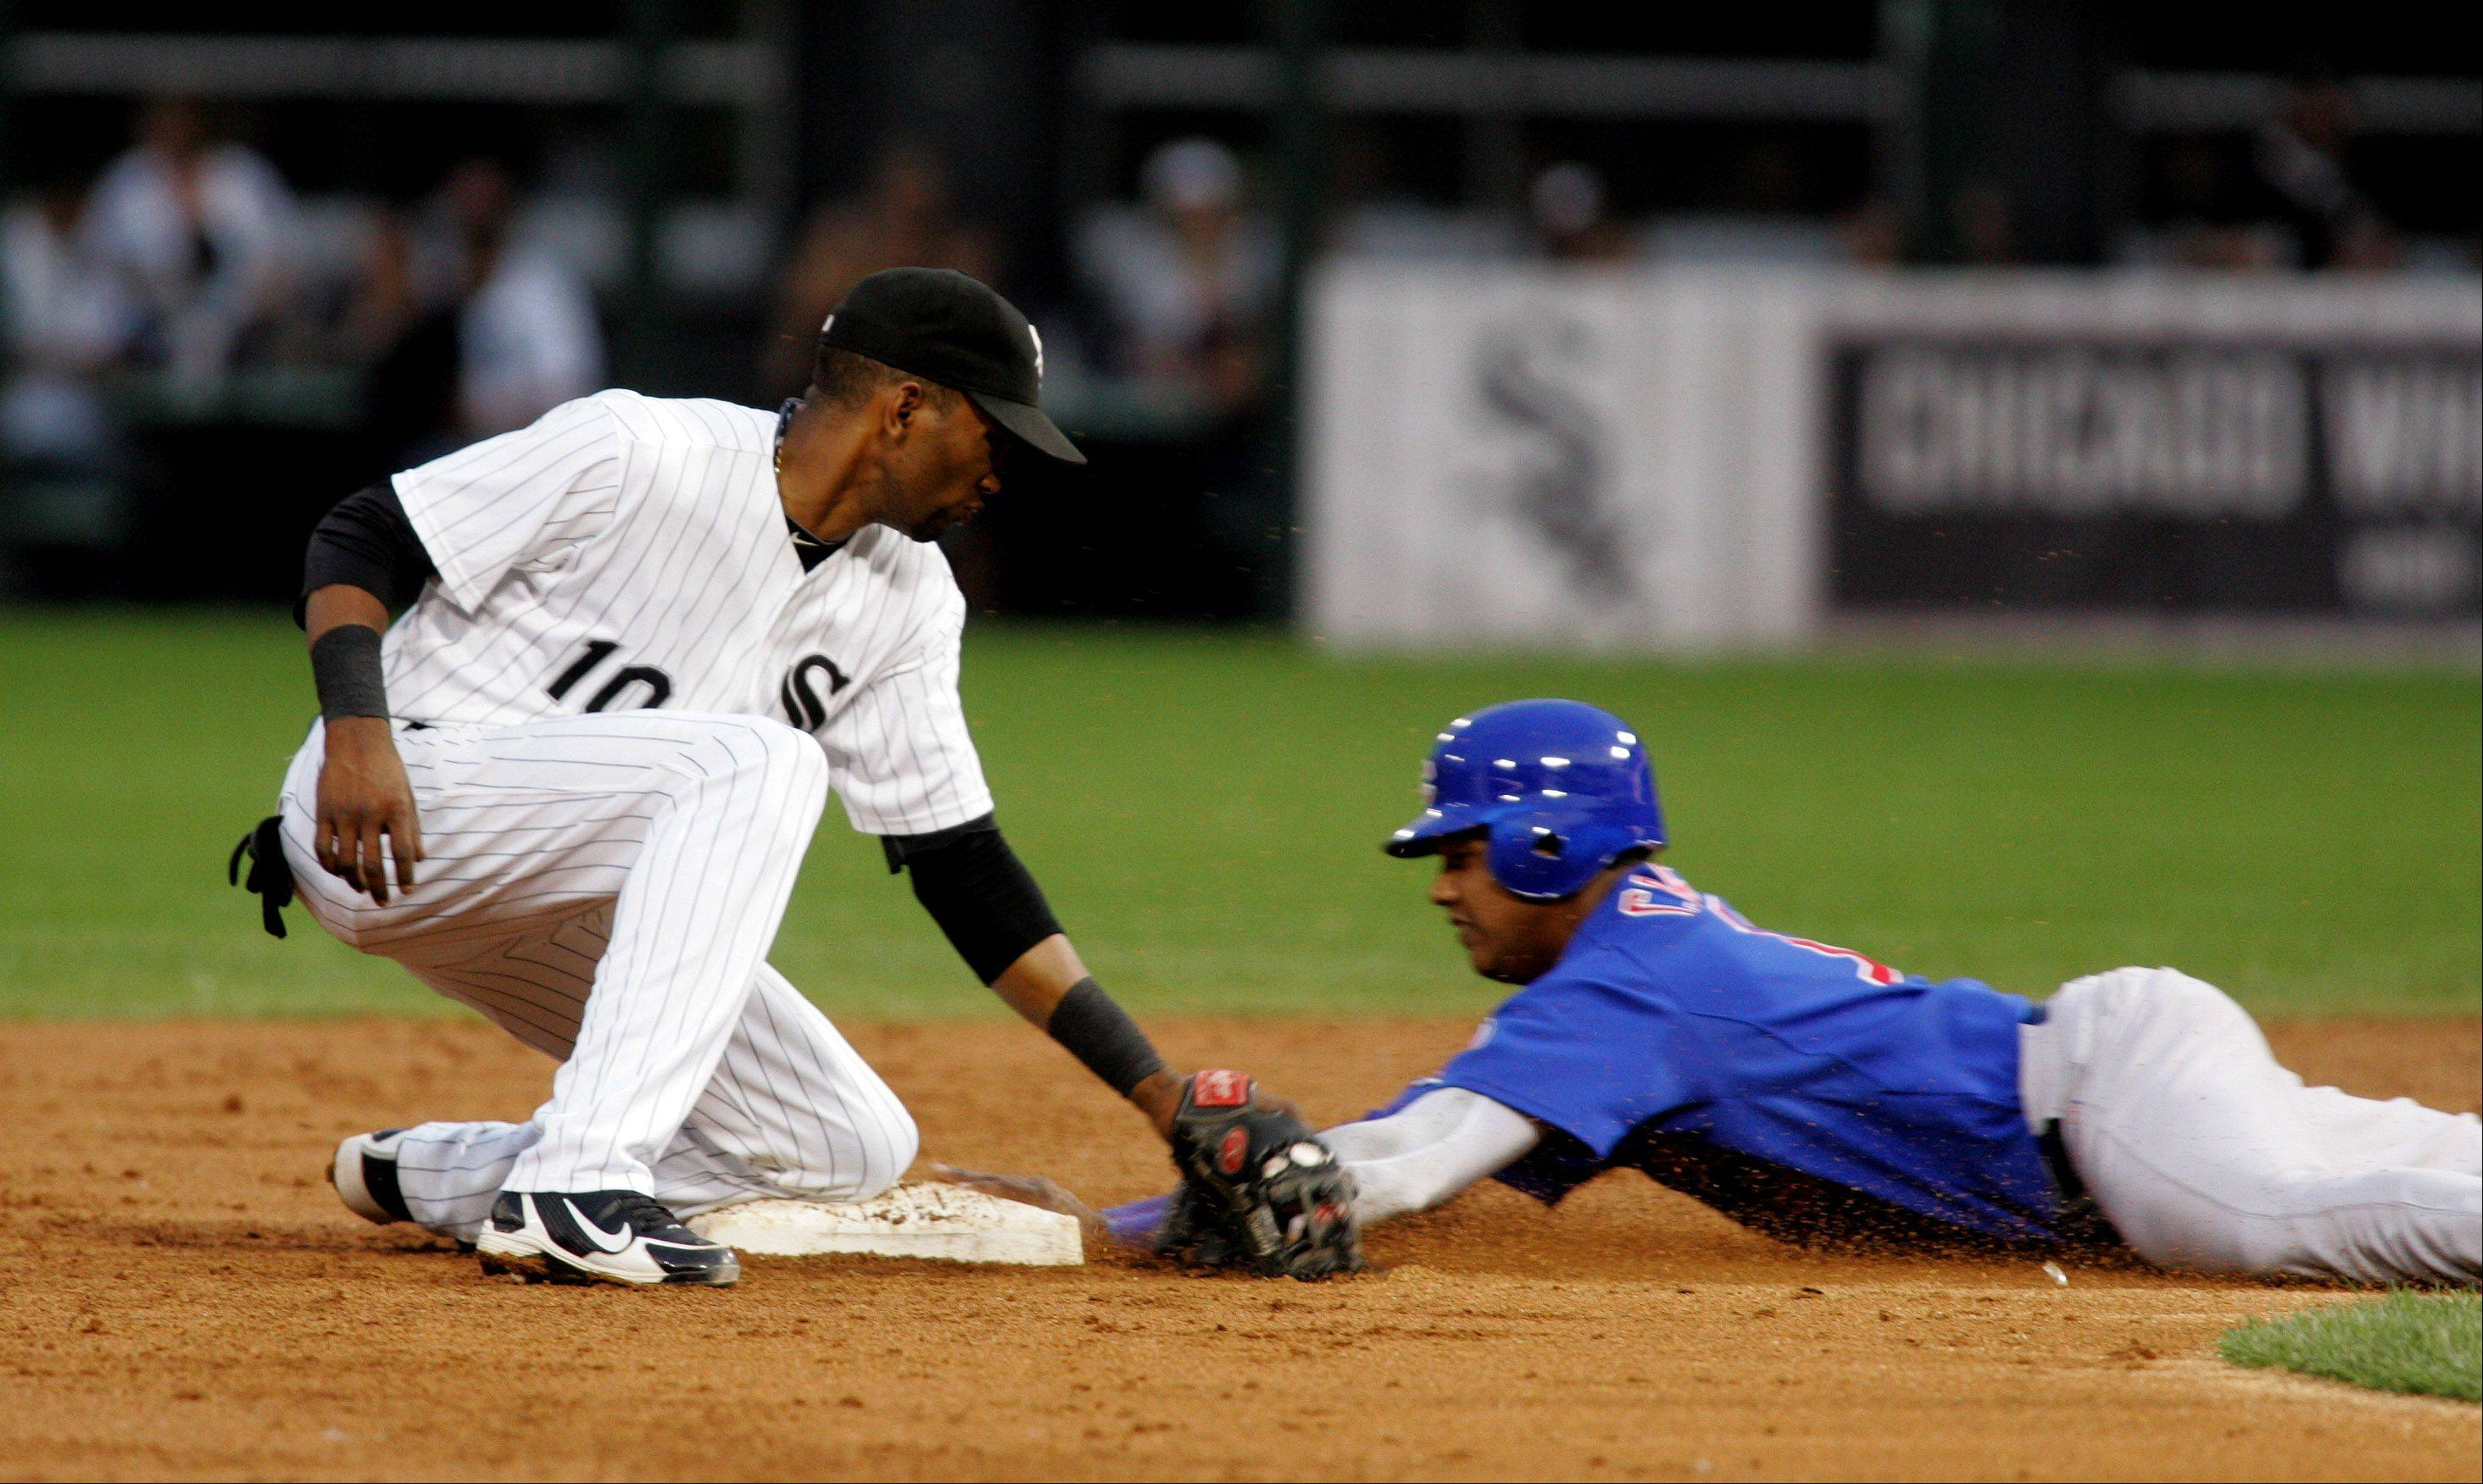 Alexei Ramirez of the Chicago White Sox reaches out for the tag at second, but Starlin Castro of the Chicago Cubs is safe.